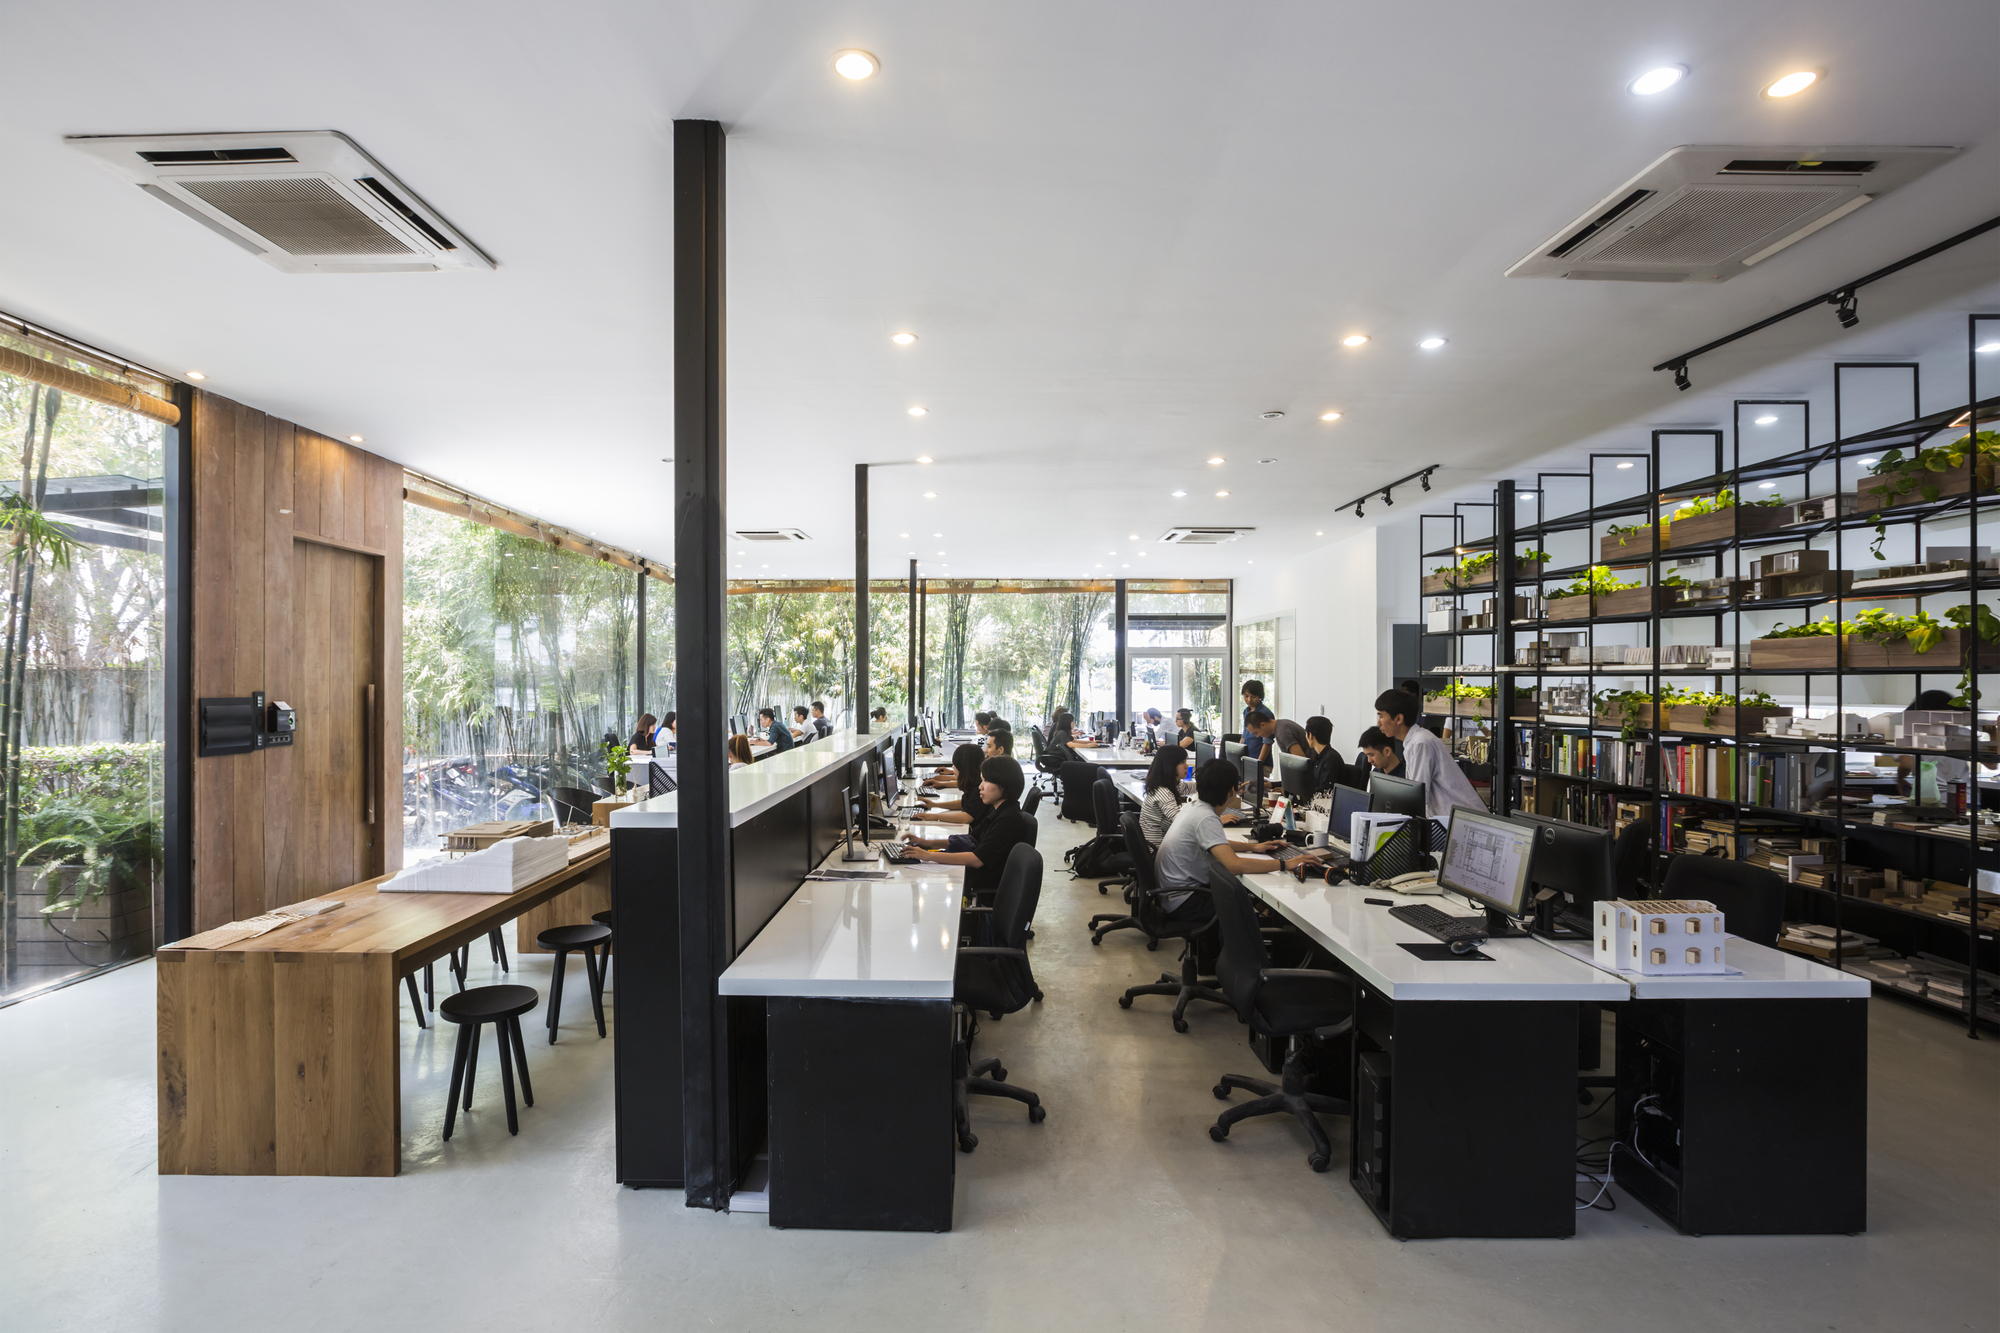 mia design studio offices / mia design studio | archdaily